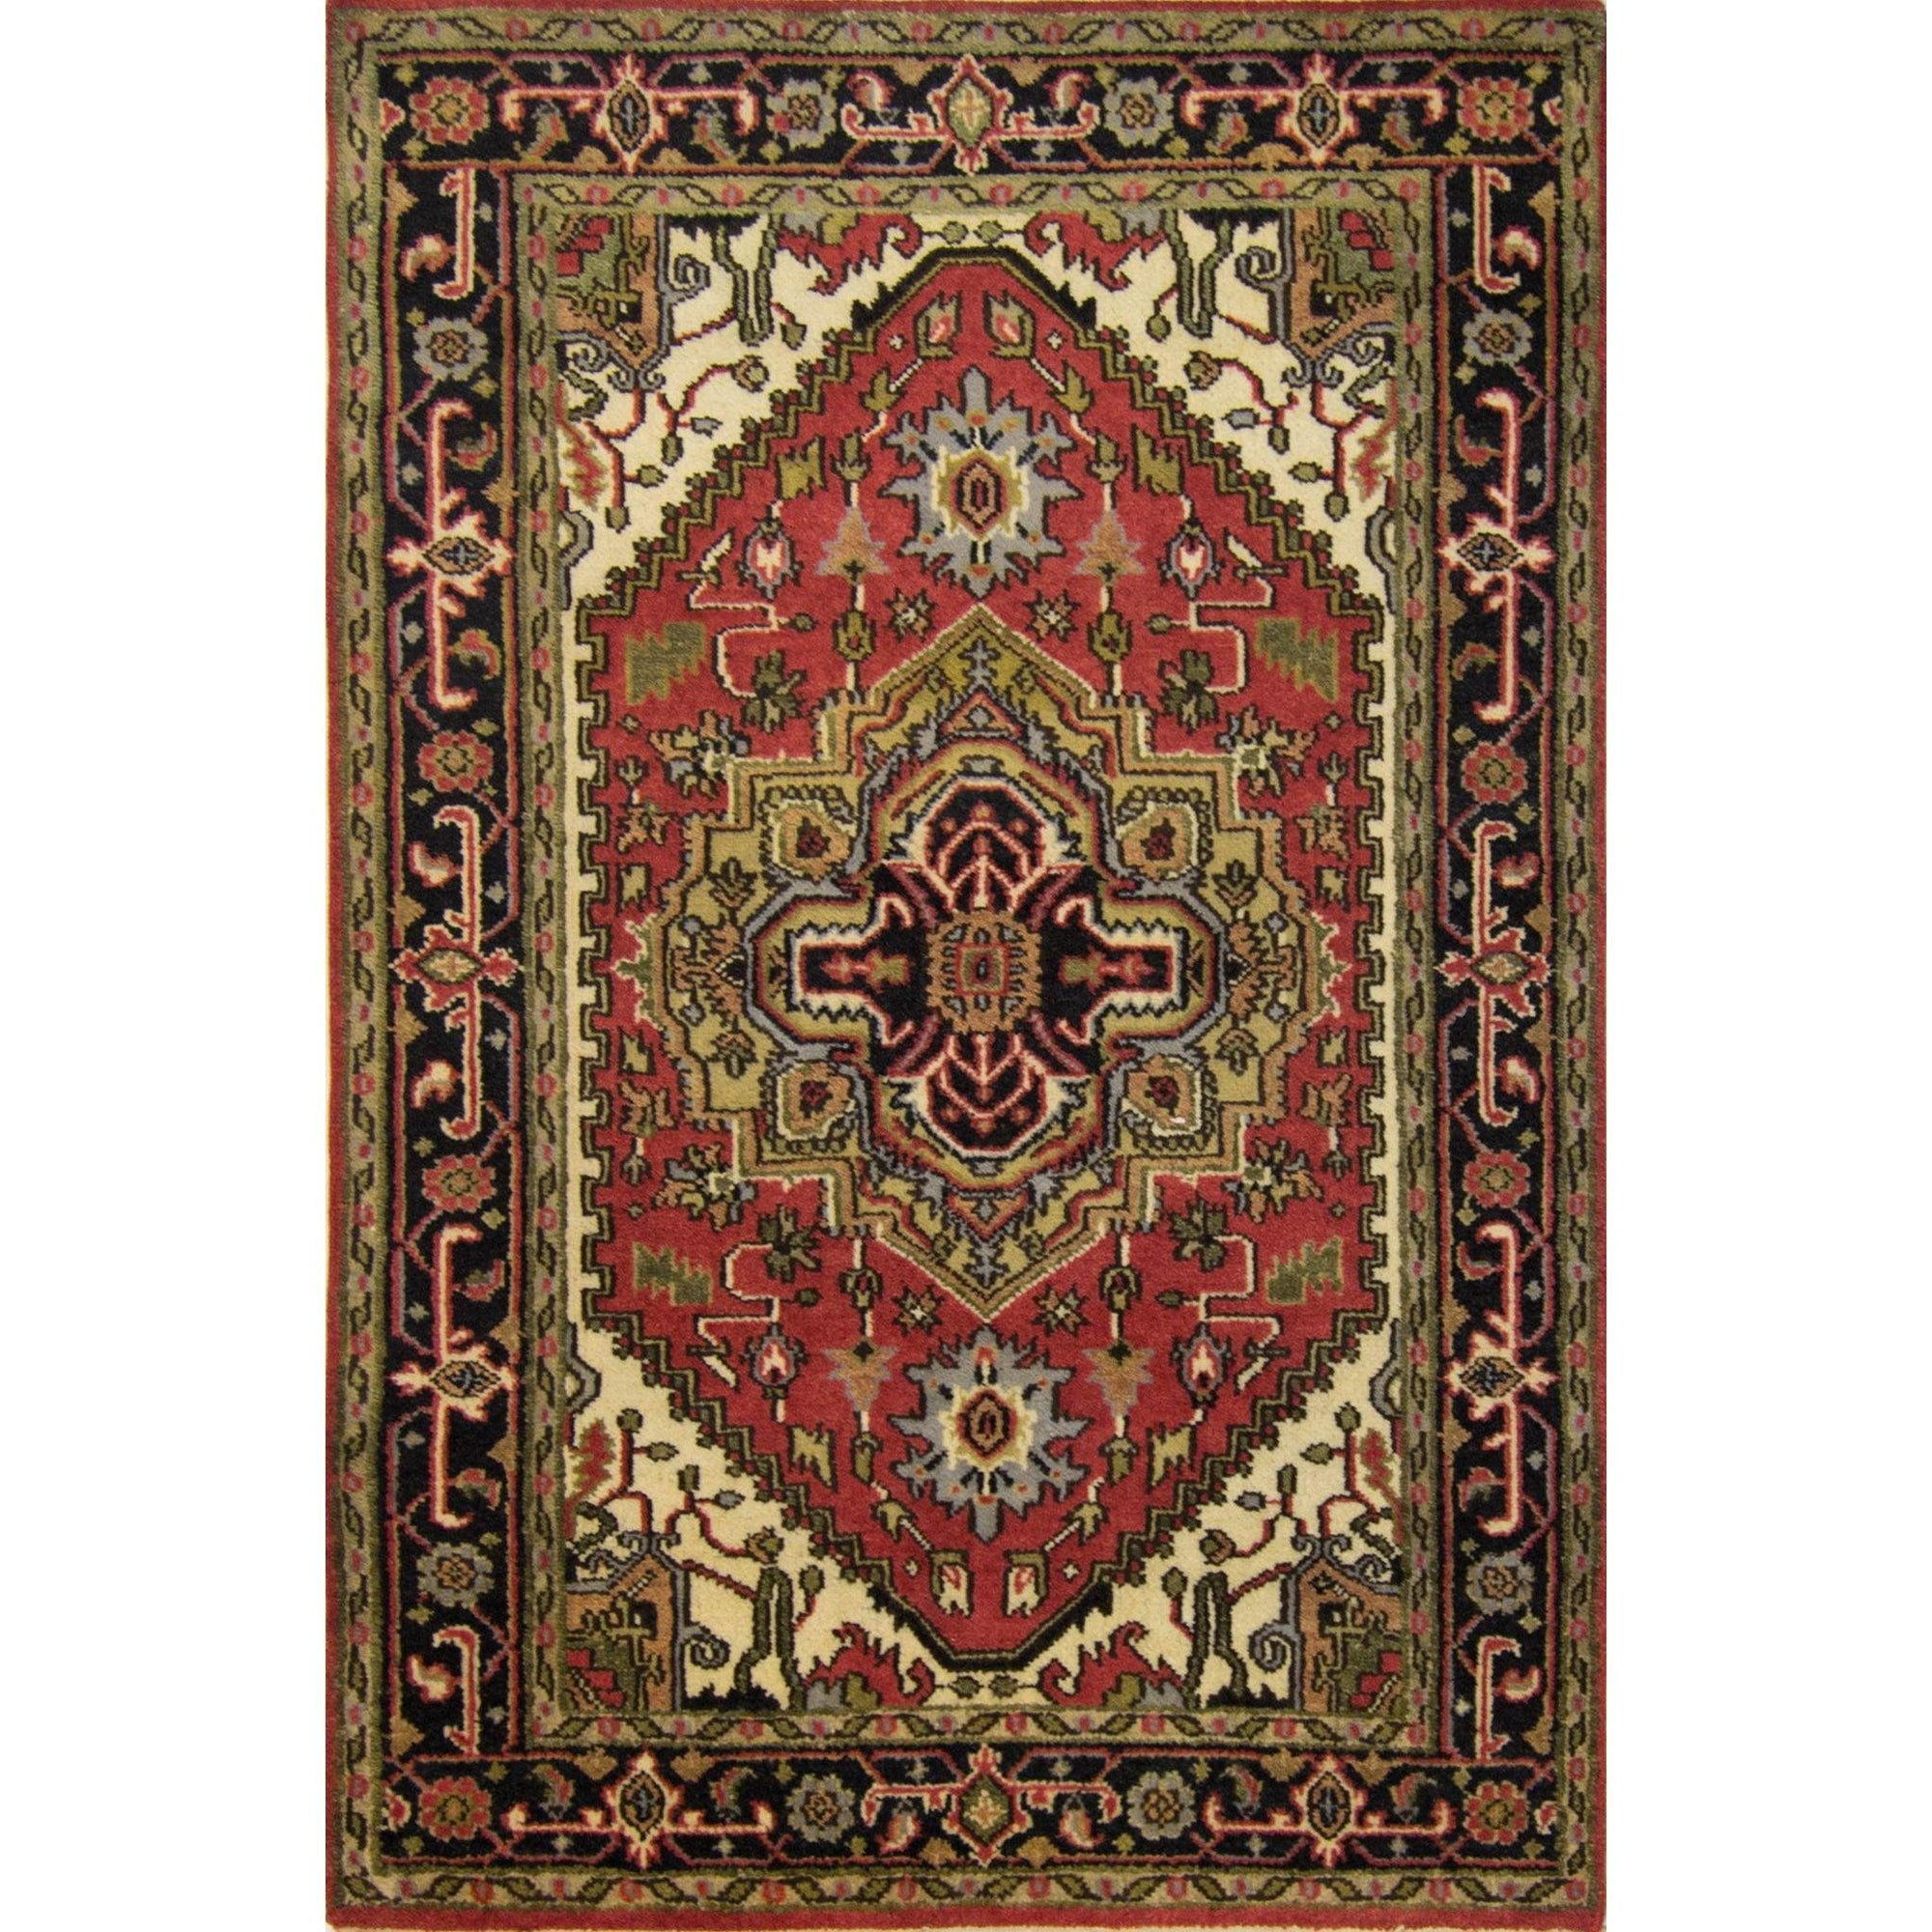 Hand-knotted Persian Wool Heriz Rug 120cm x 178cm Persian-Rug | House-of-Haghi | NewMarket | Auckland | NZ | Handmade Persian Rugs | Hand Knotted Persian Rugs